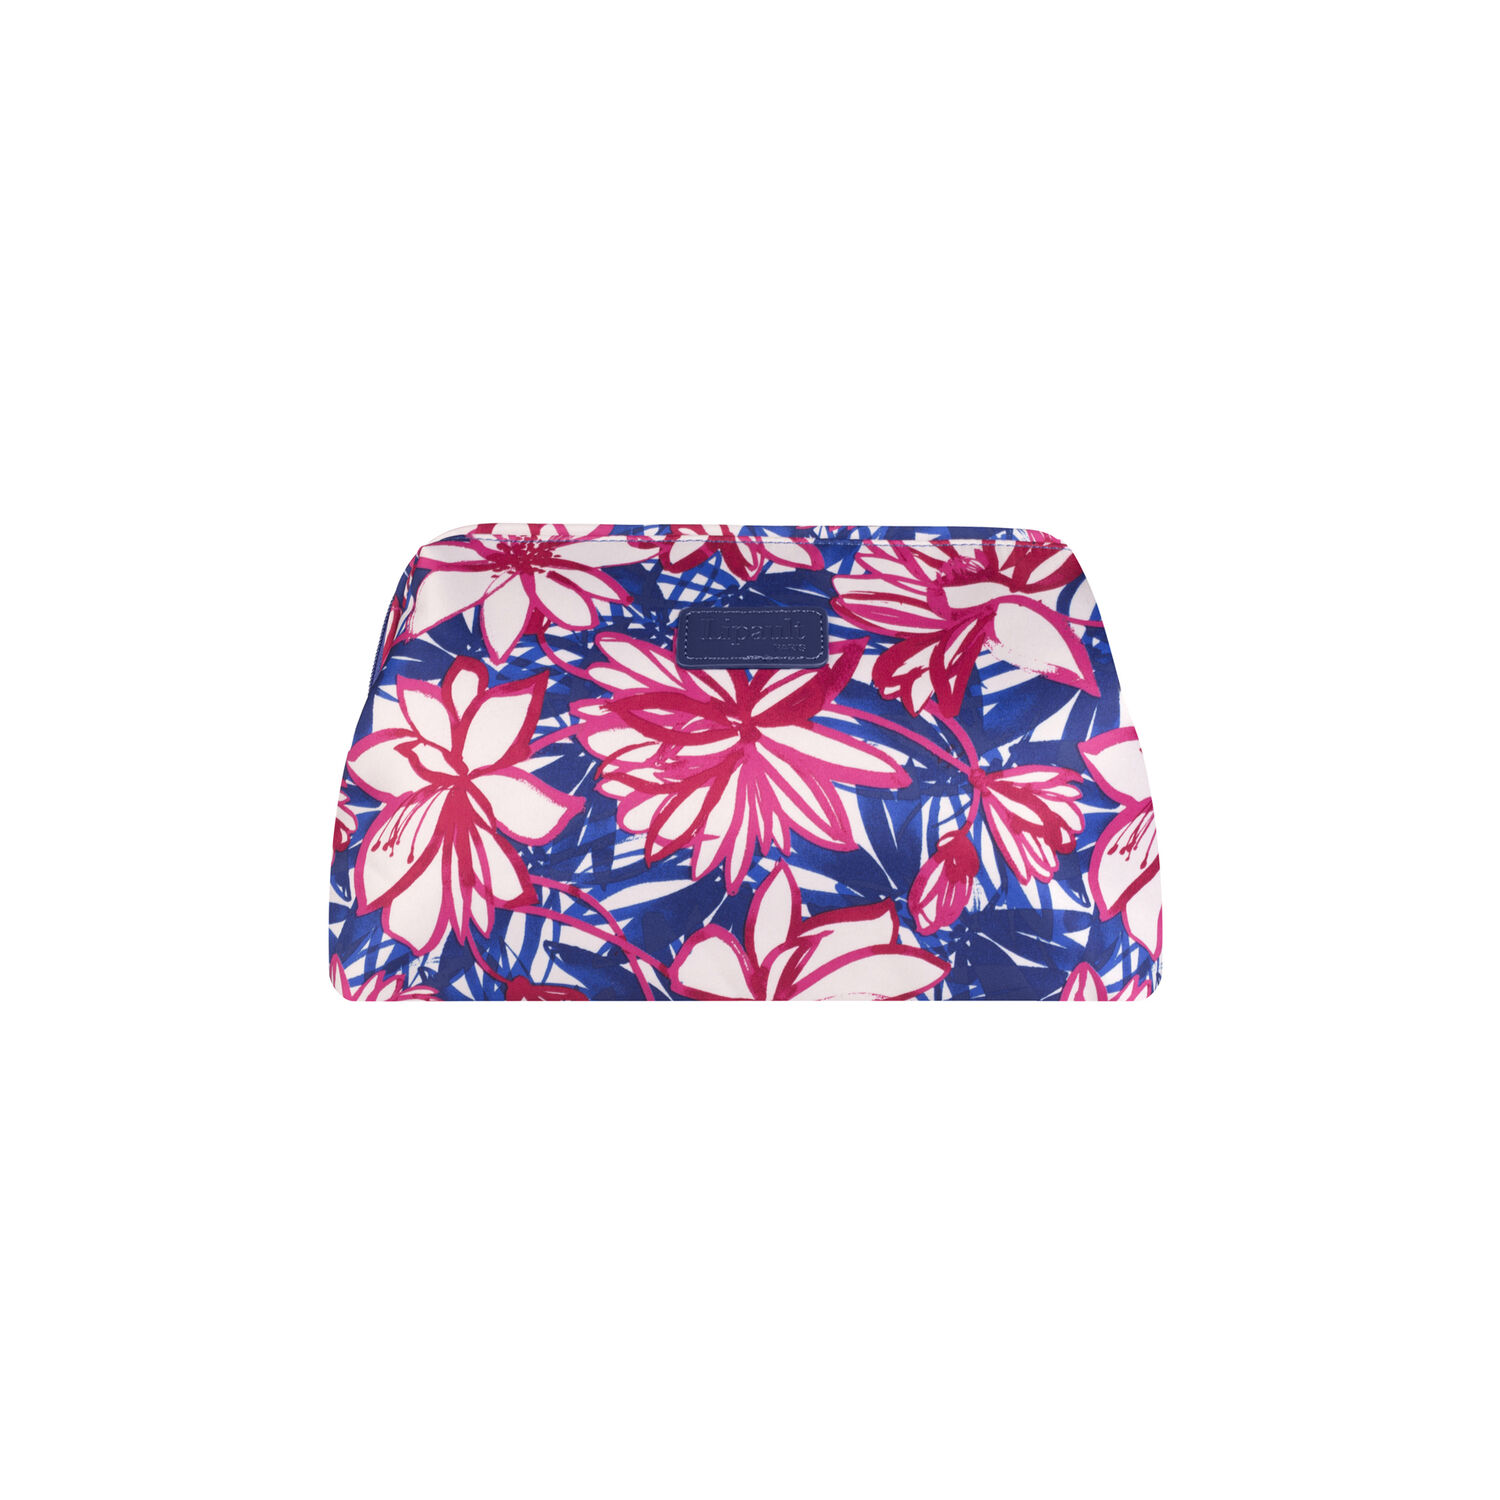 259228d575a9 Lipault Blooming Summer Toiletry Kit